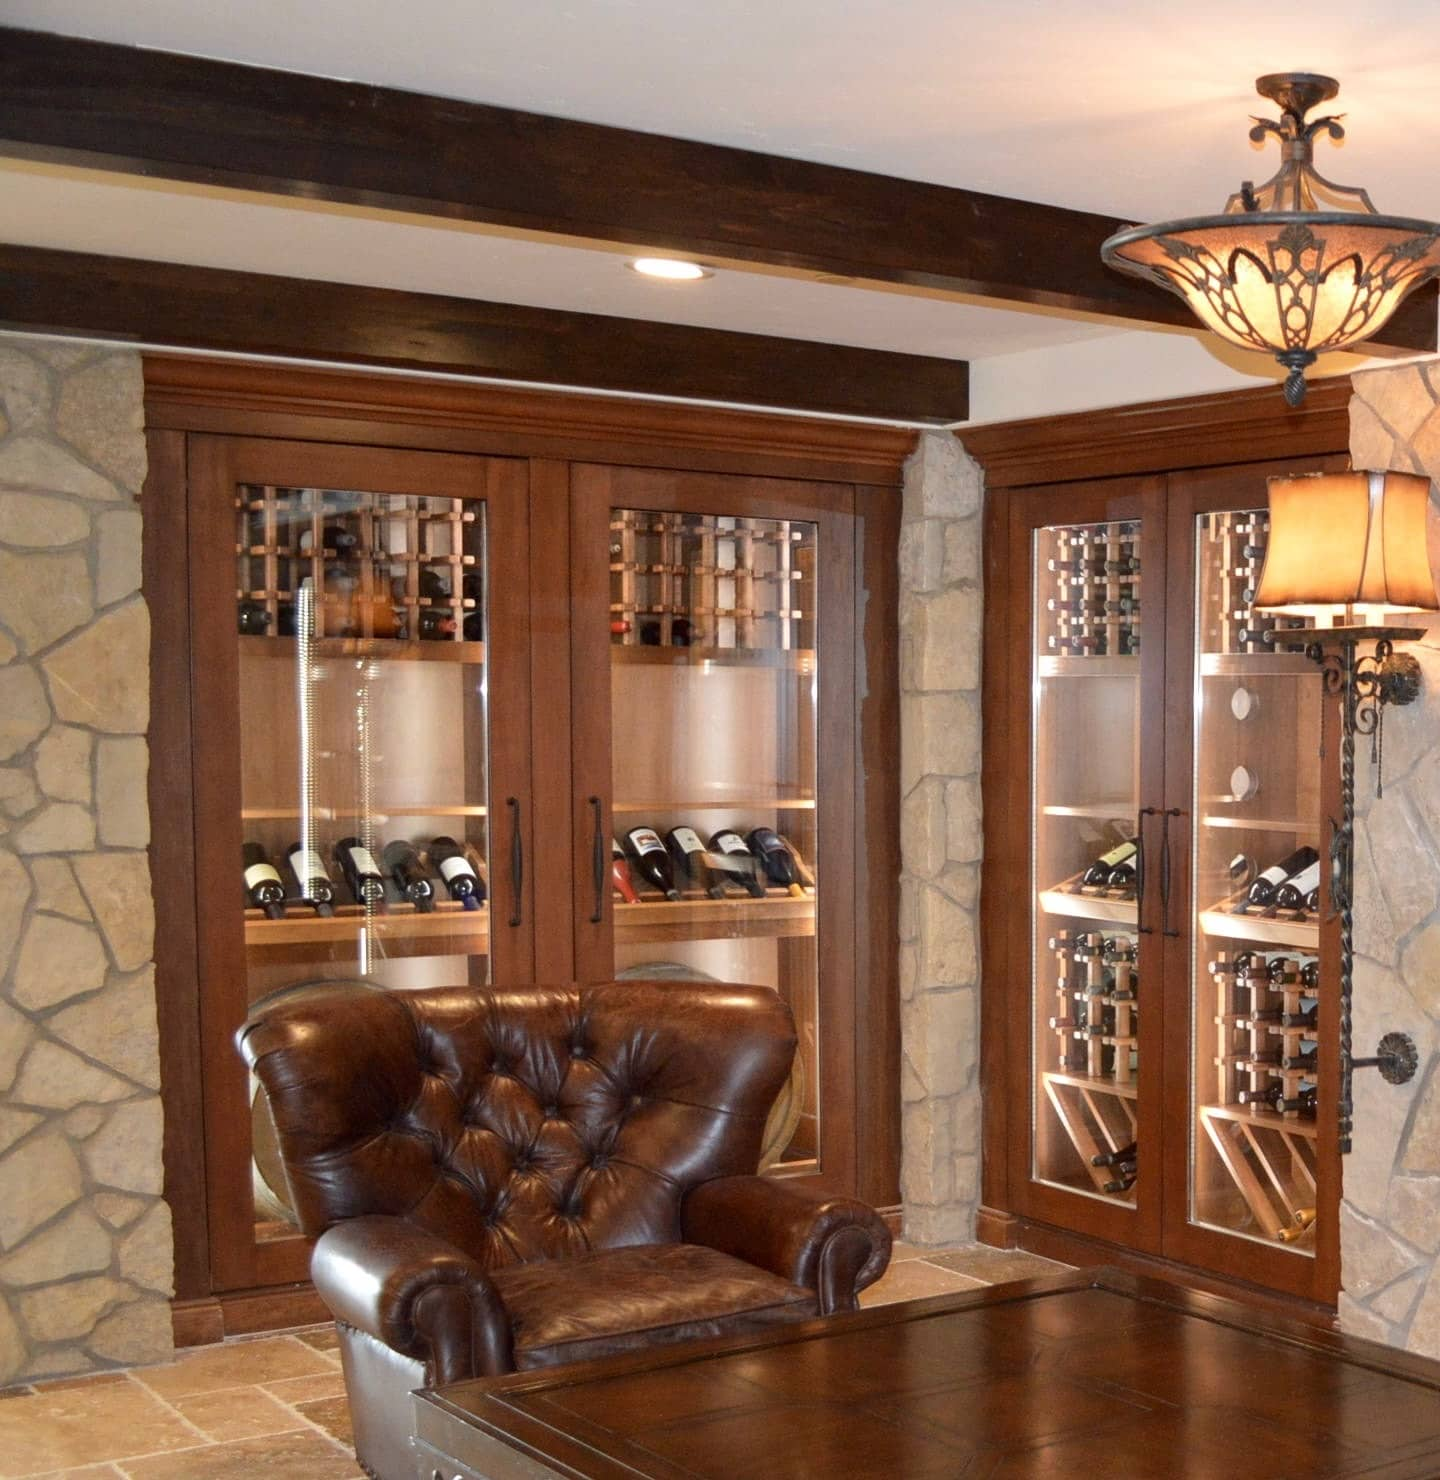 Click for a larger image! & Wine Cabinets Refrigeration System Installation Project